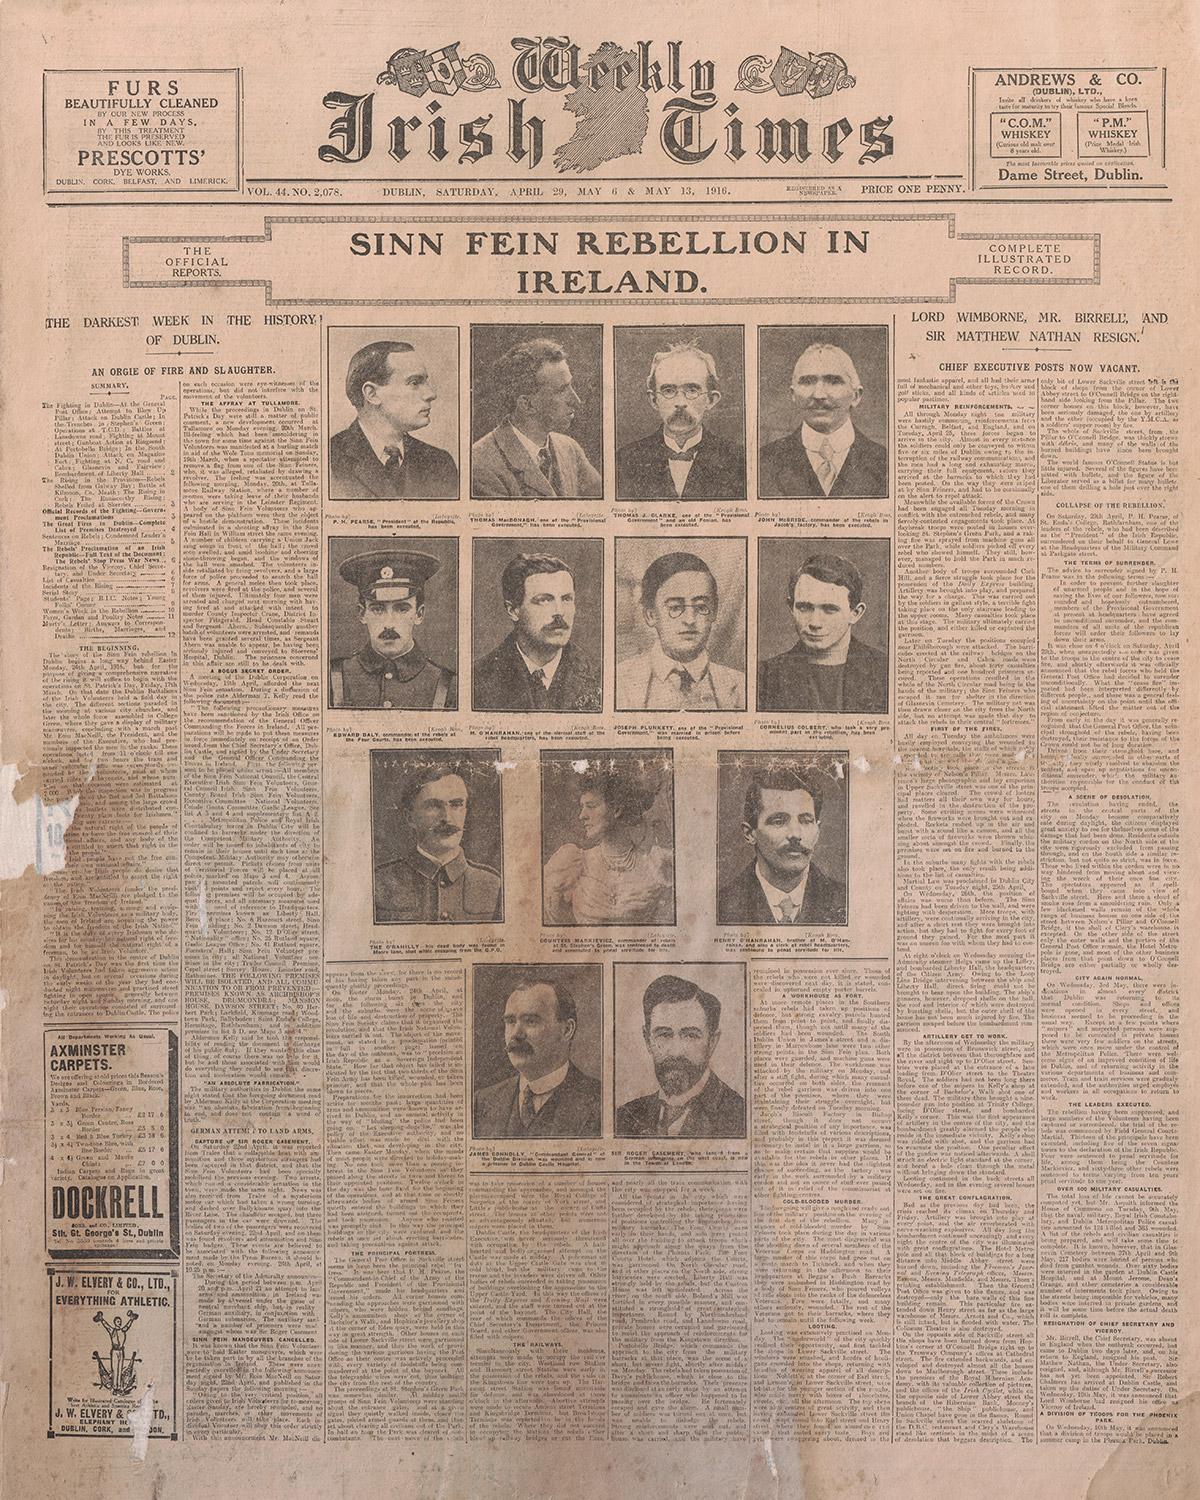 The cover of a 1916 issue of The Weekly Irish Times newspaper